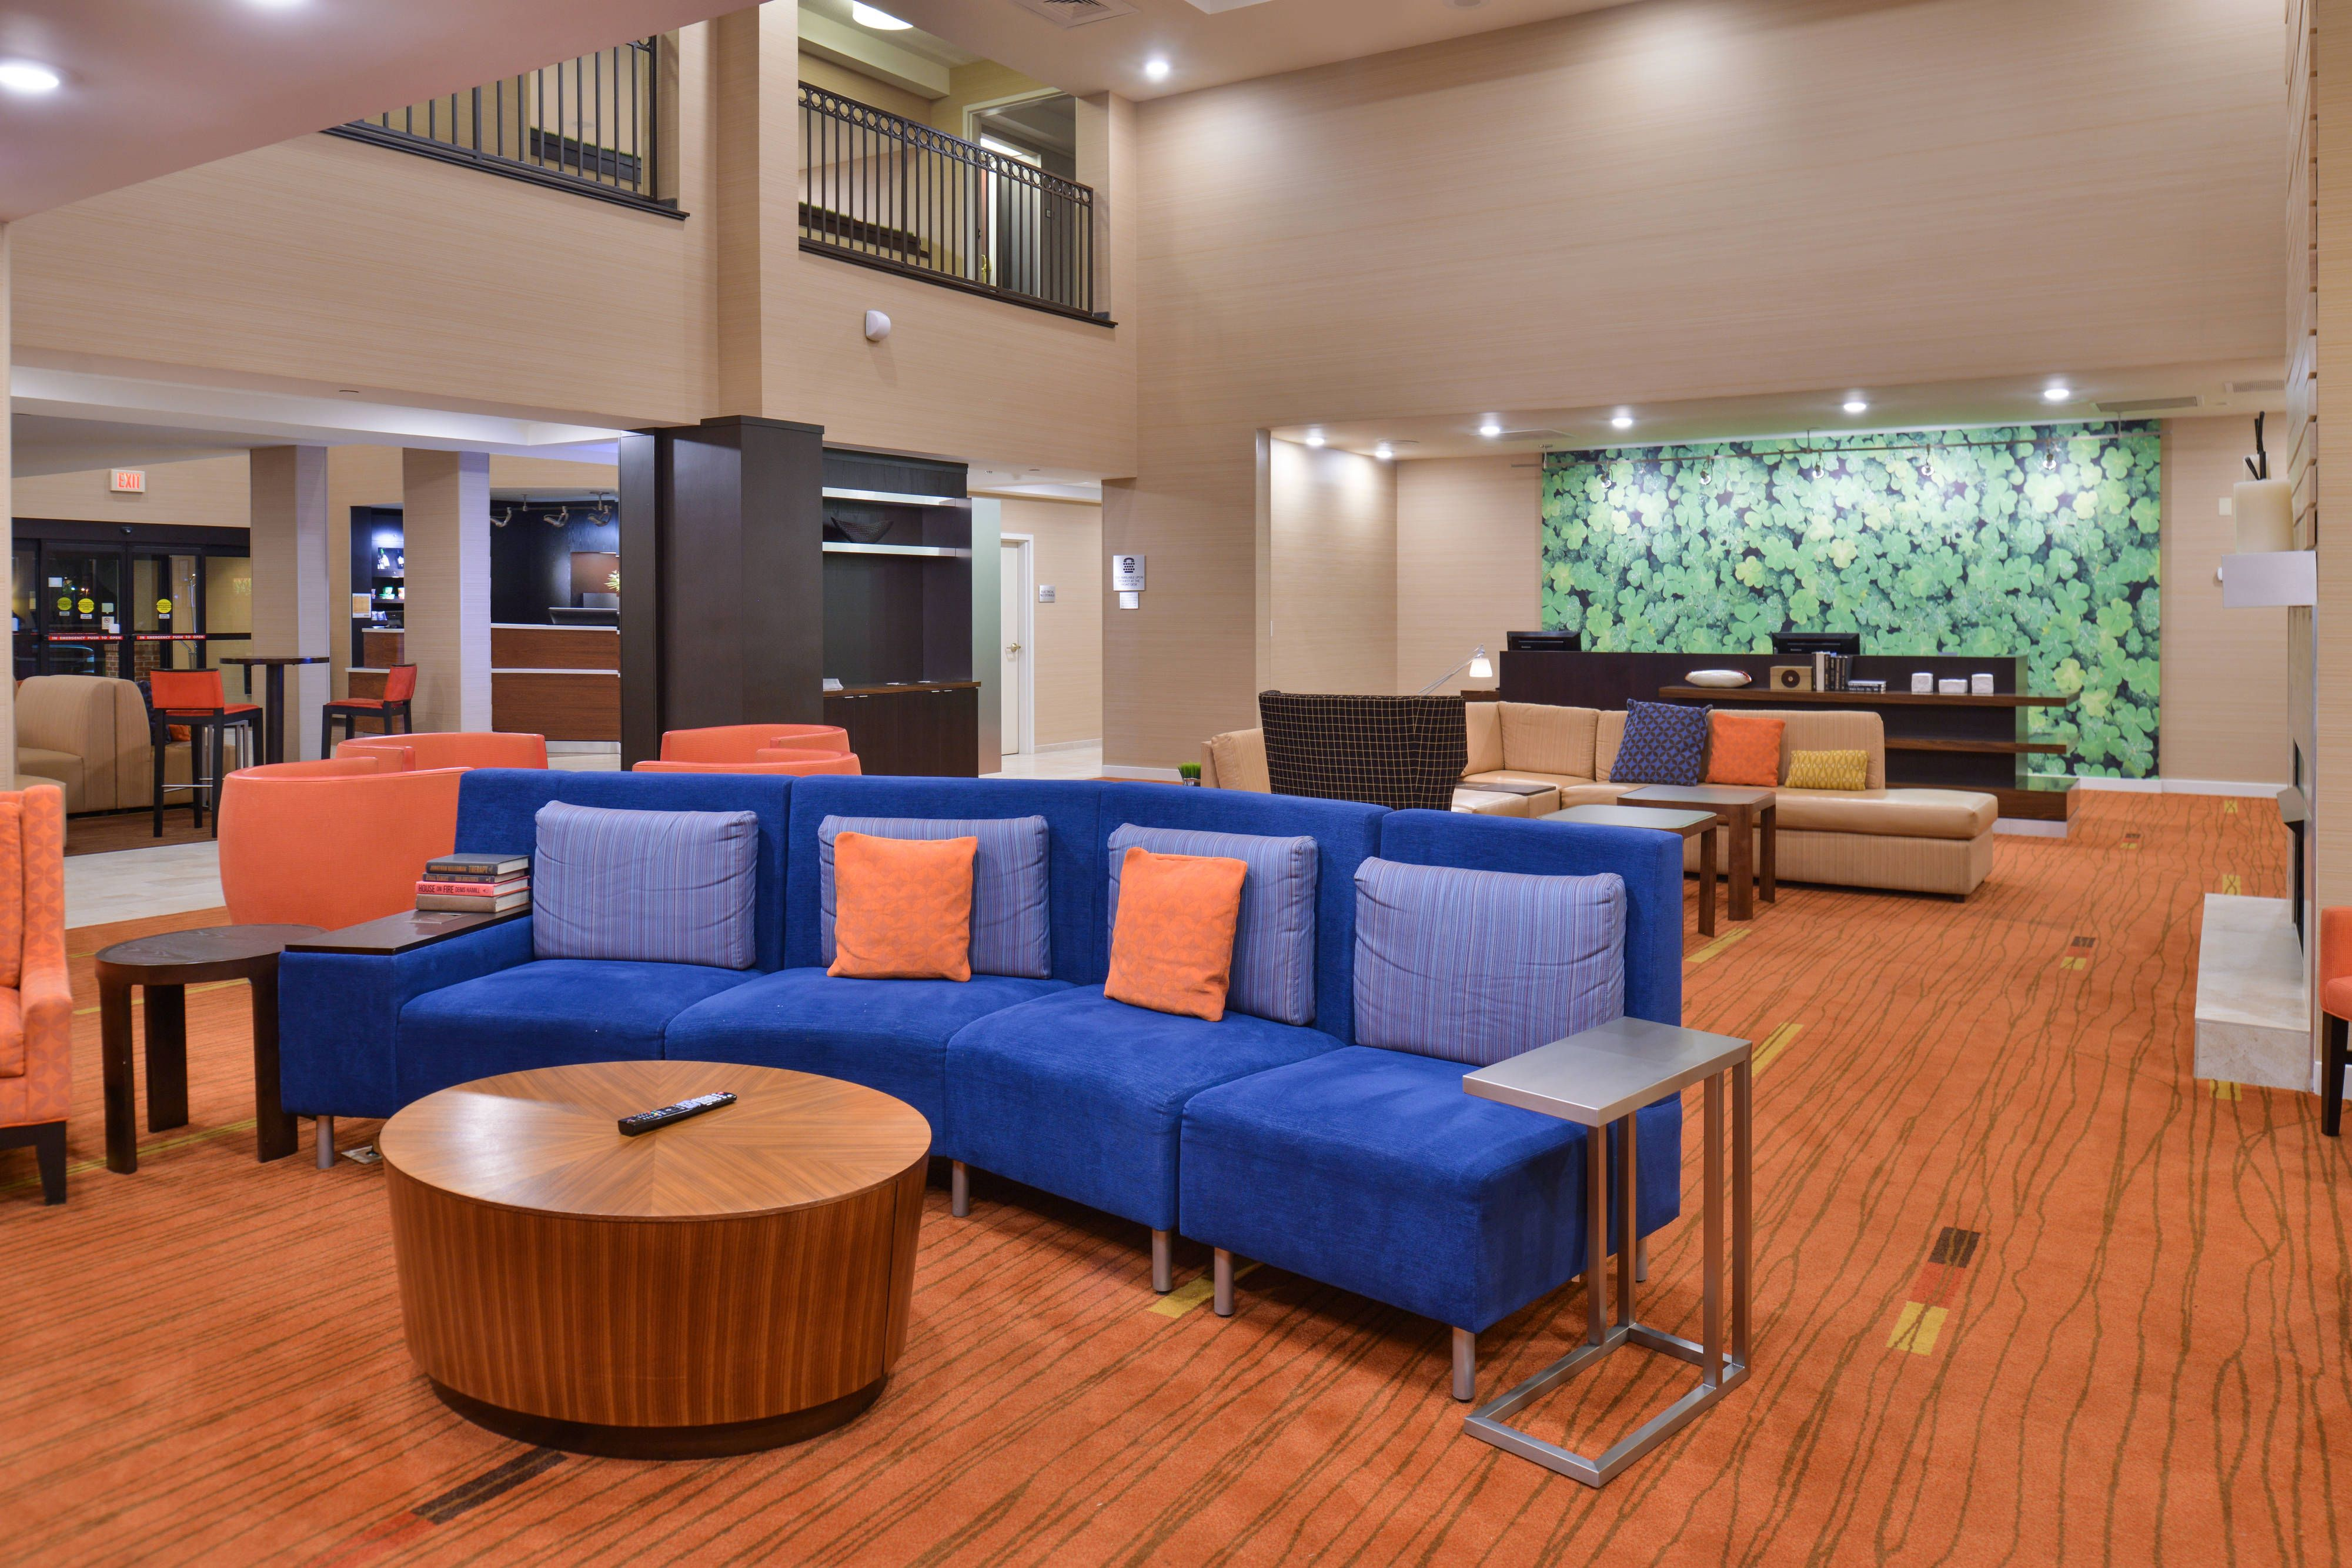 Courtyard Decatur Lobby Hotels Memorable Holidays Outdoor Furniture Sets Home Decor Hotel